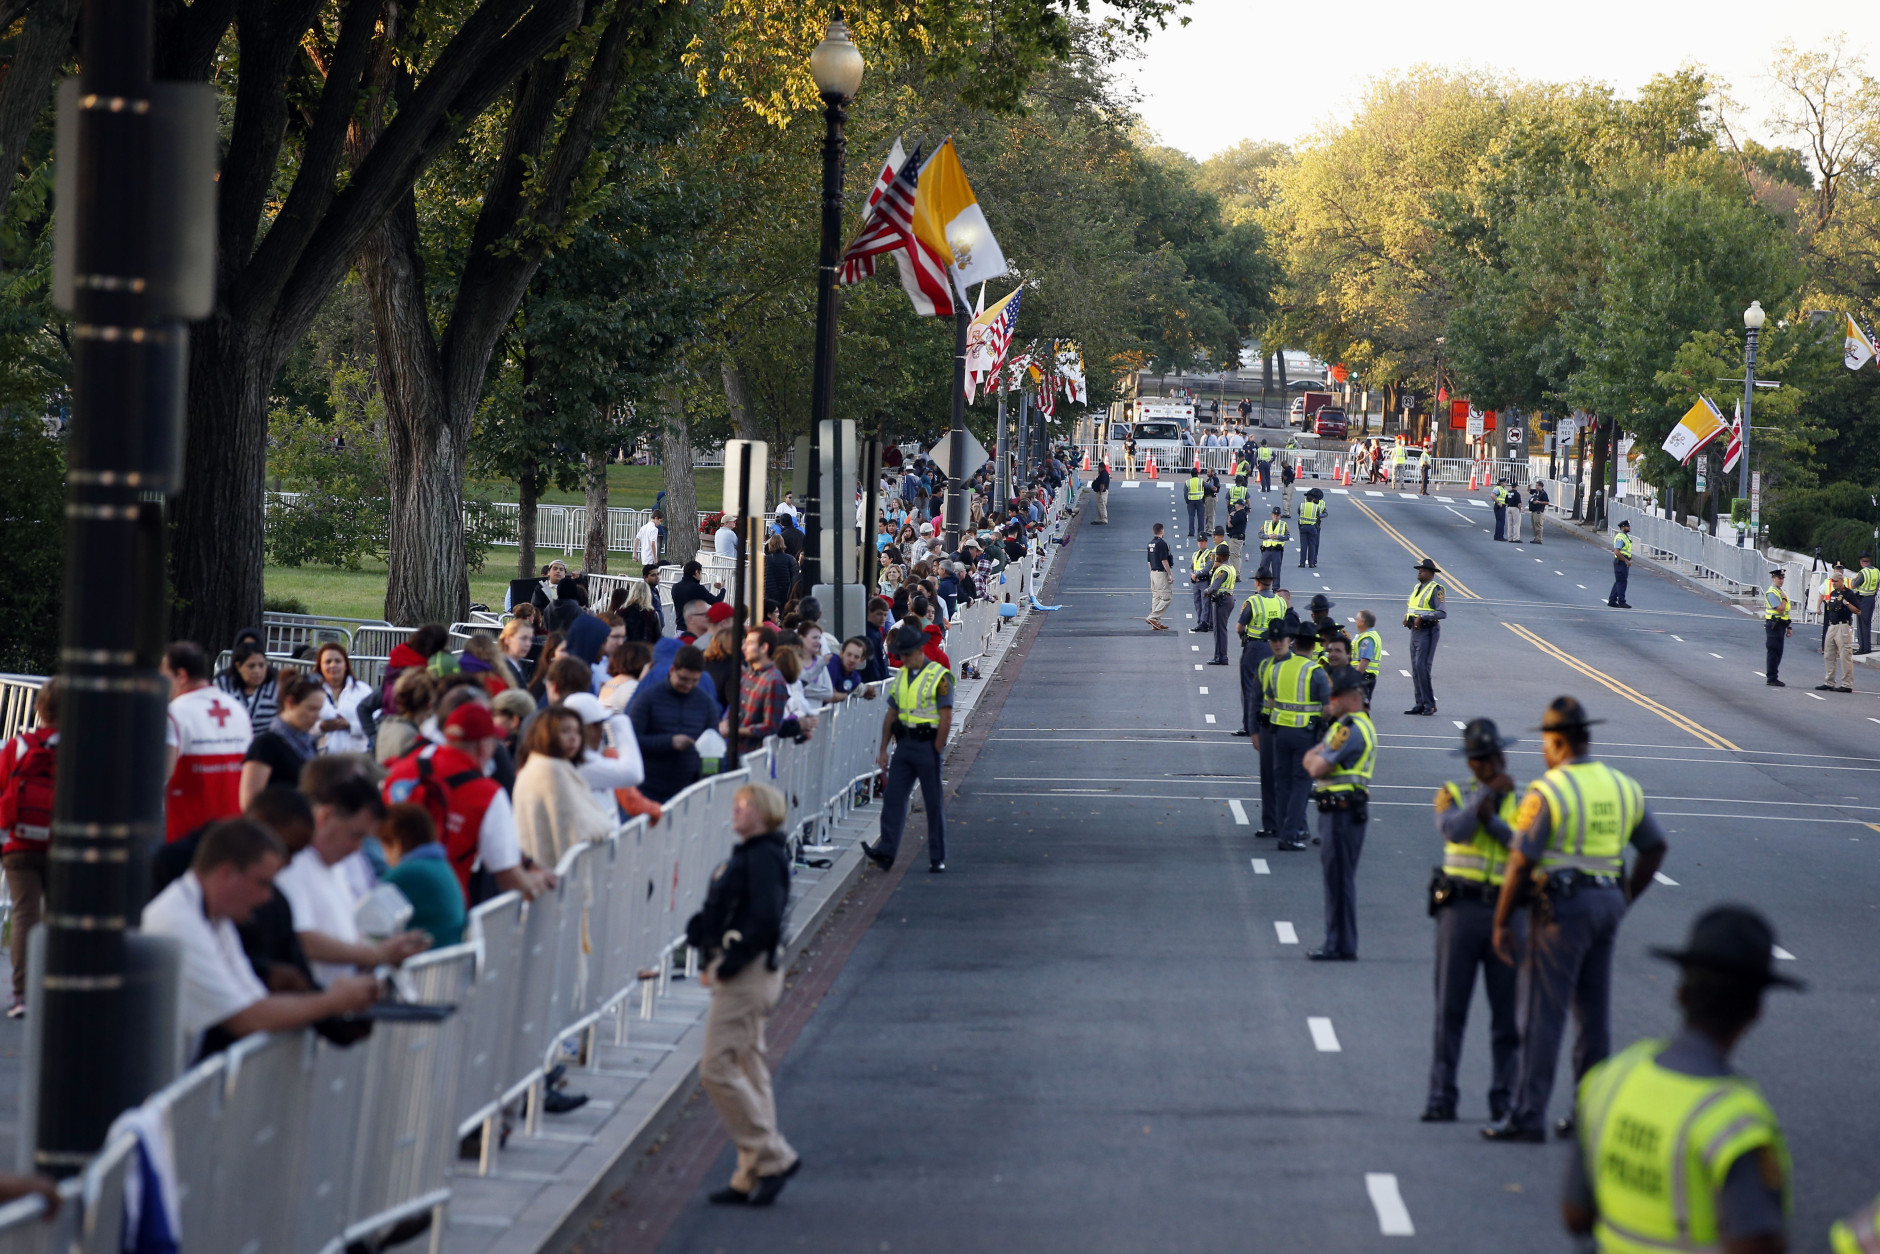 People and security line the parade route on 17th Street looking toward Constitution Avenue for Pope Francis, Wednesday, Sept. 23, 2015, in Washington. The parade will take place after President Barack Obama welcomes him at the White House. (AP Photo/Alex Brandon, Pool)